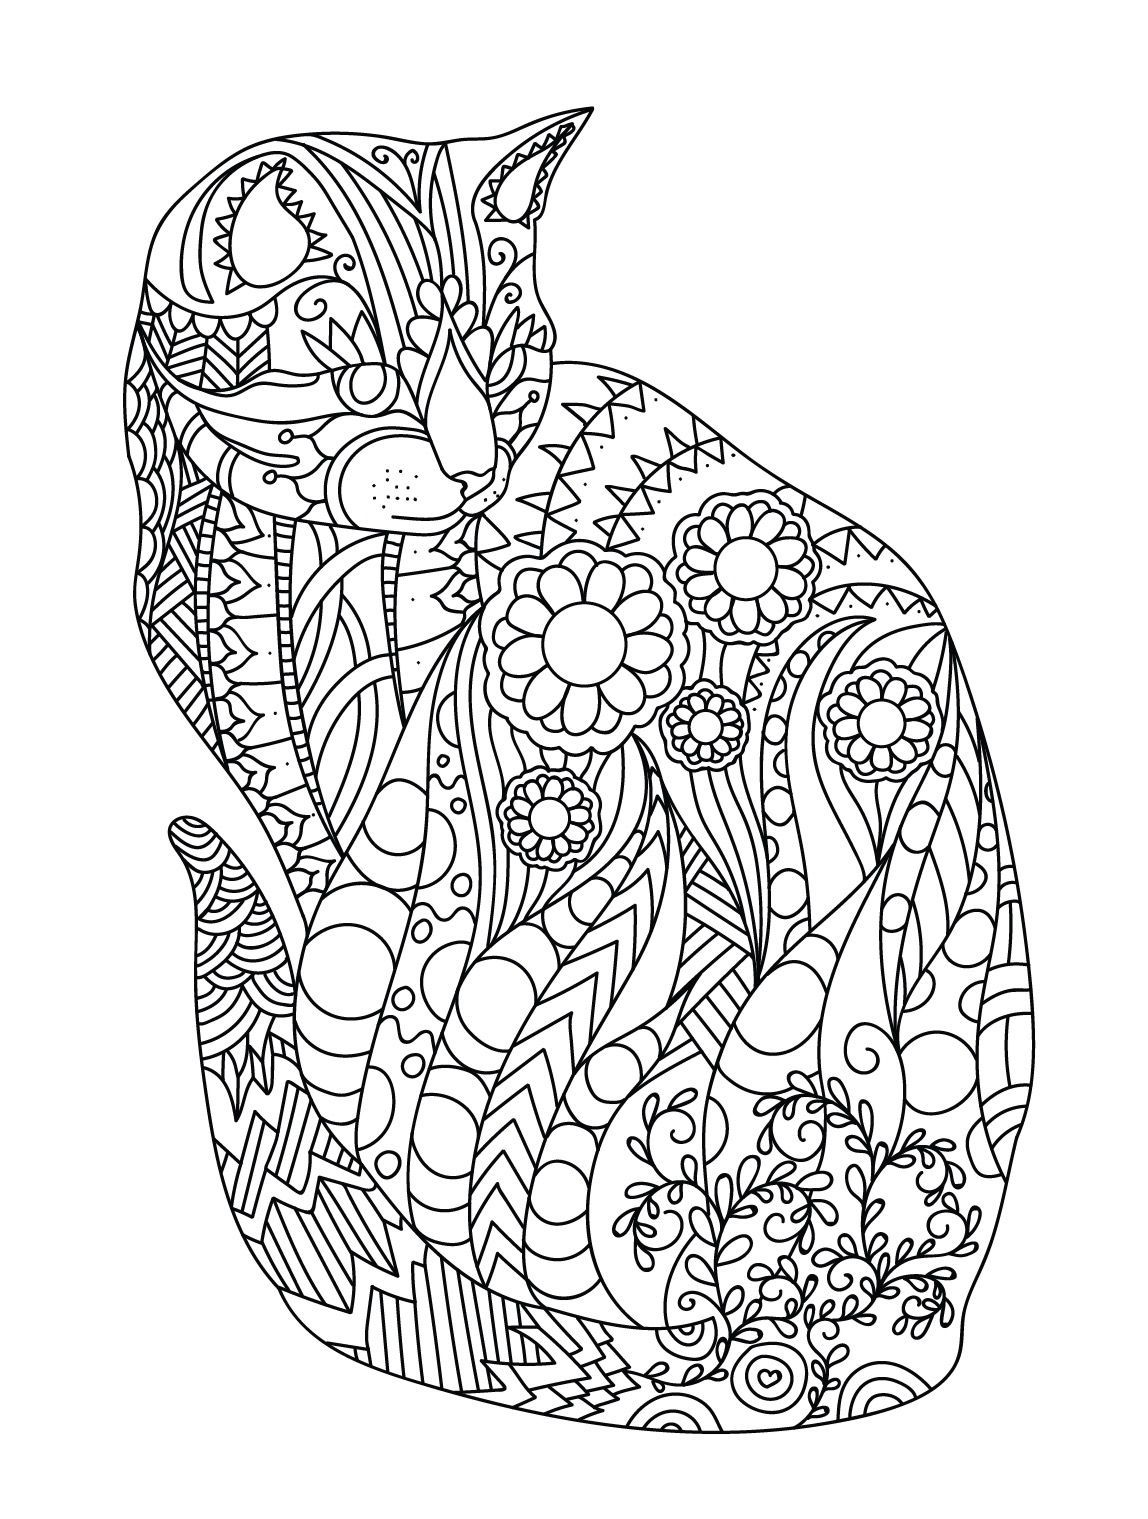 49 Zentangle Animals Inspiration To Get Started Tangling Cat Coloring Book Cat Coloring Page Emoji Coloring Pages [ jpg ]